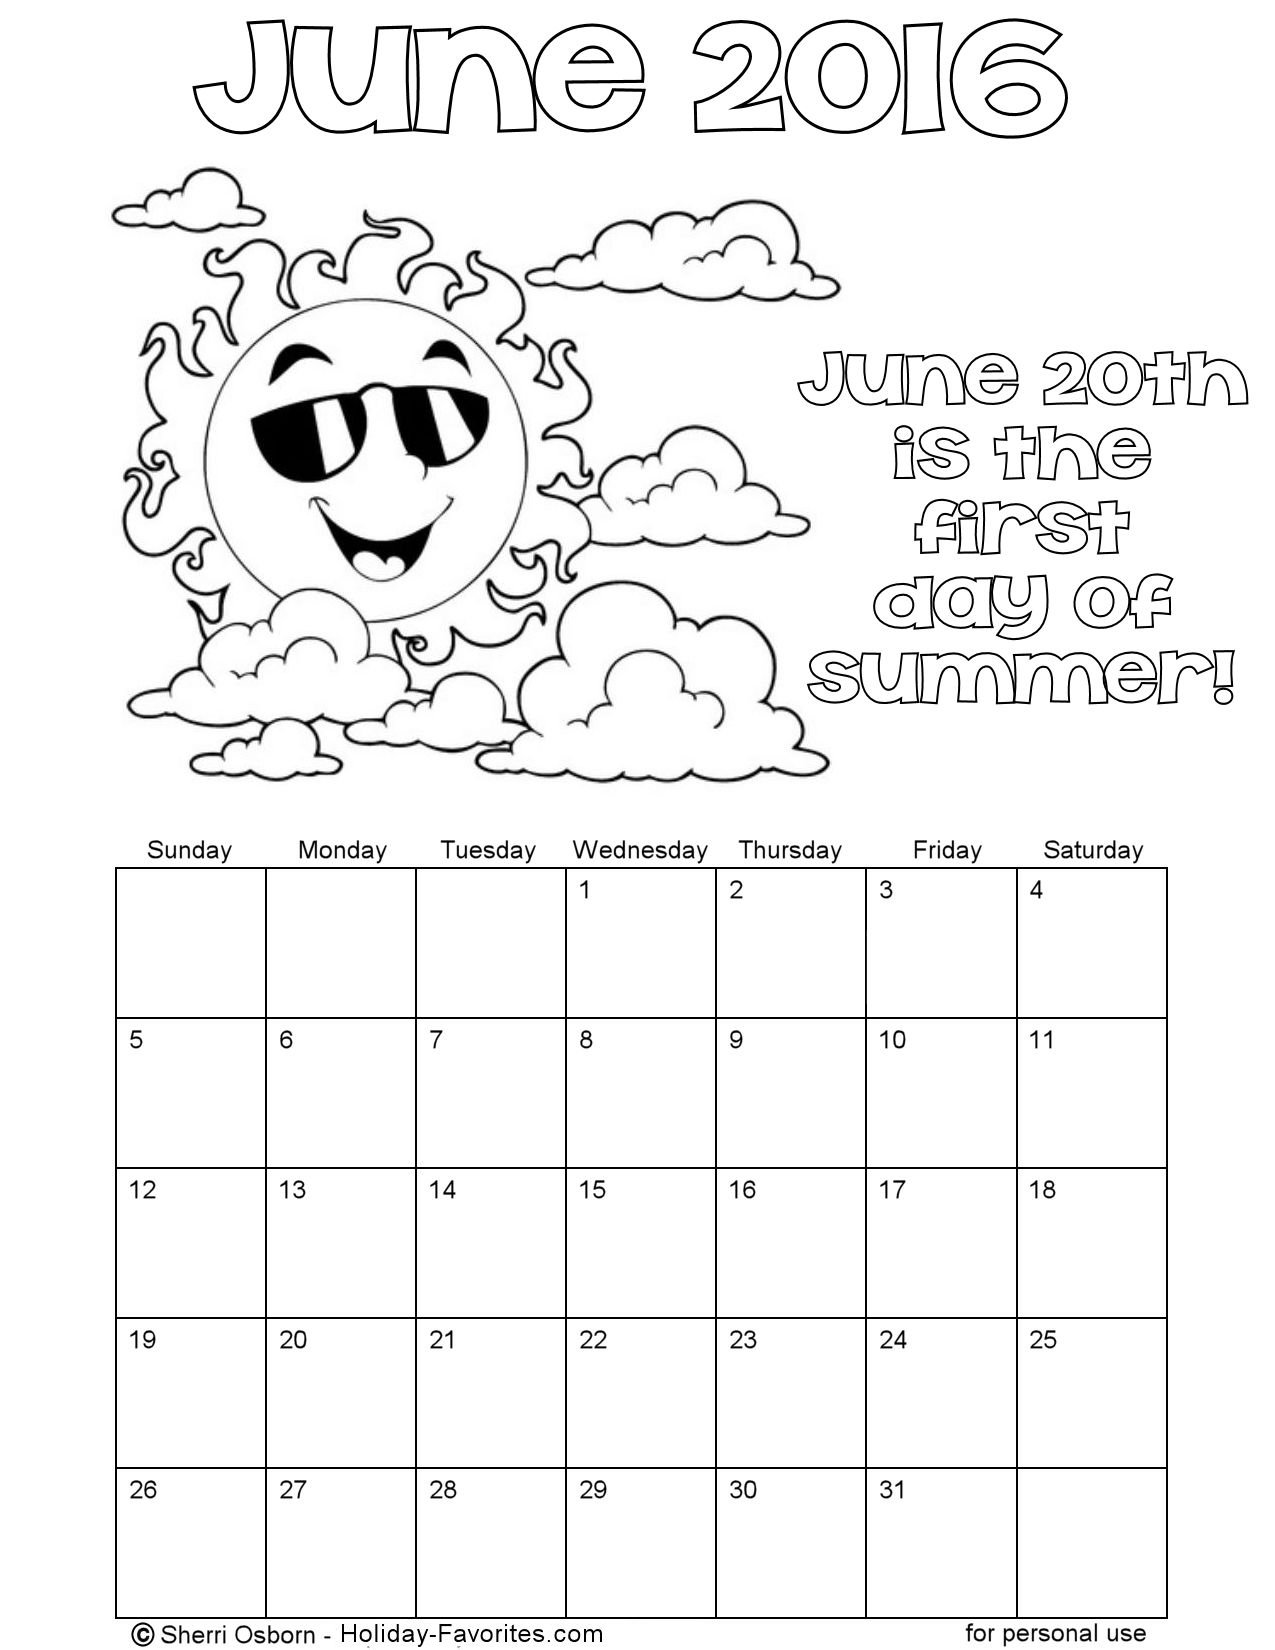 june 2016 printable summer color calendar holiday favorites